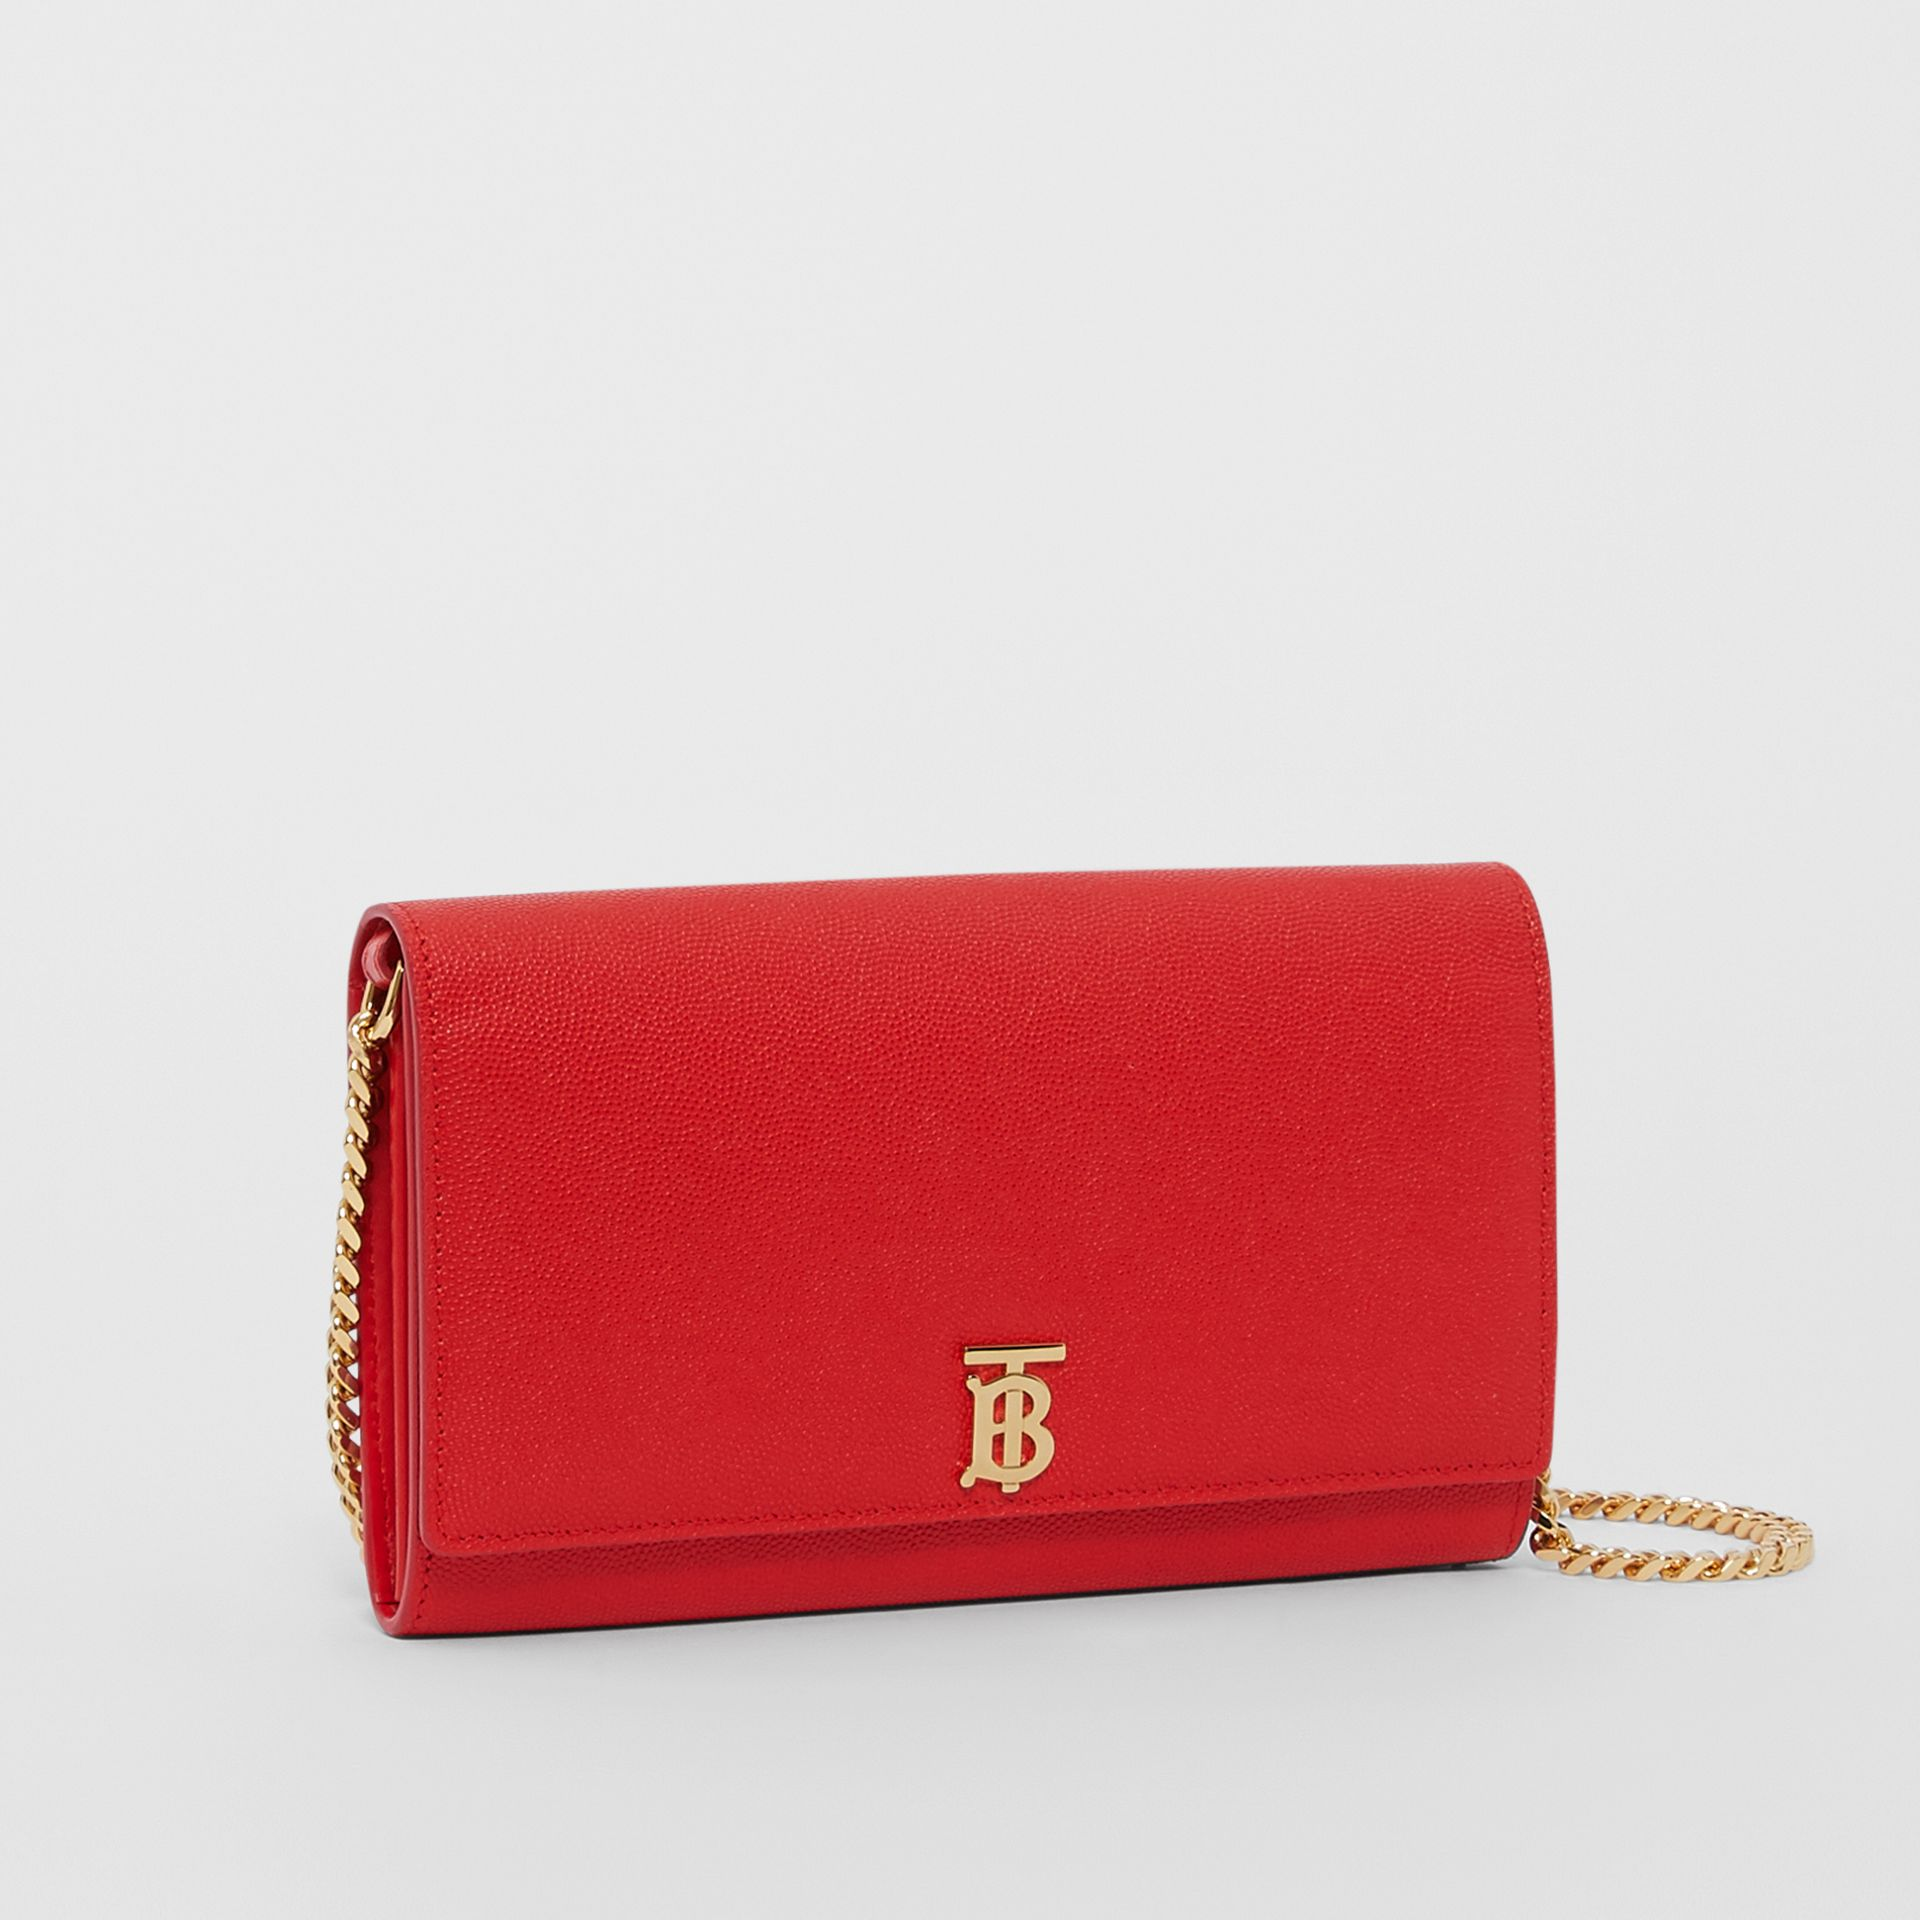 Monogram Motif Leather Wallet with Detachable Strap in Bright Red - Women | Burberry United Kingdom - gallery image 4